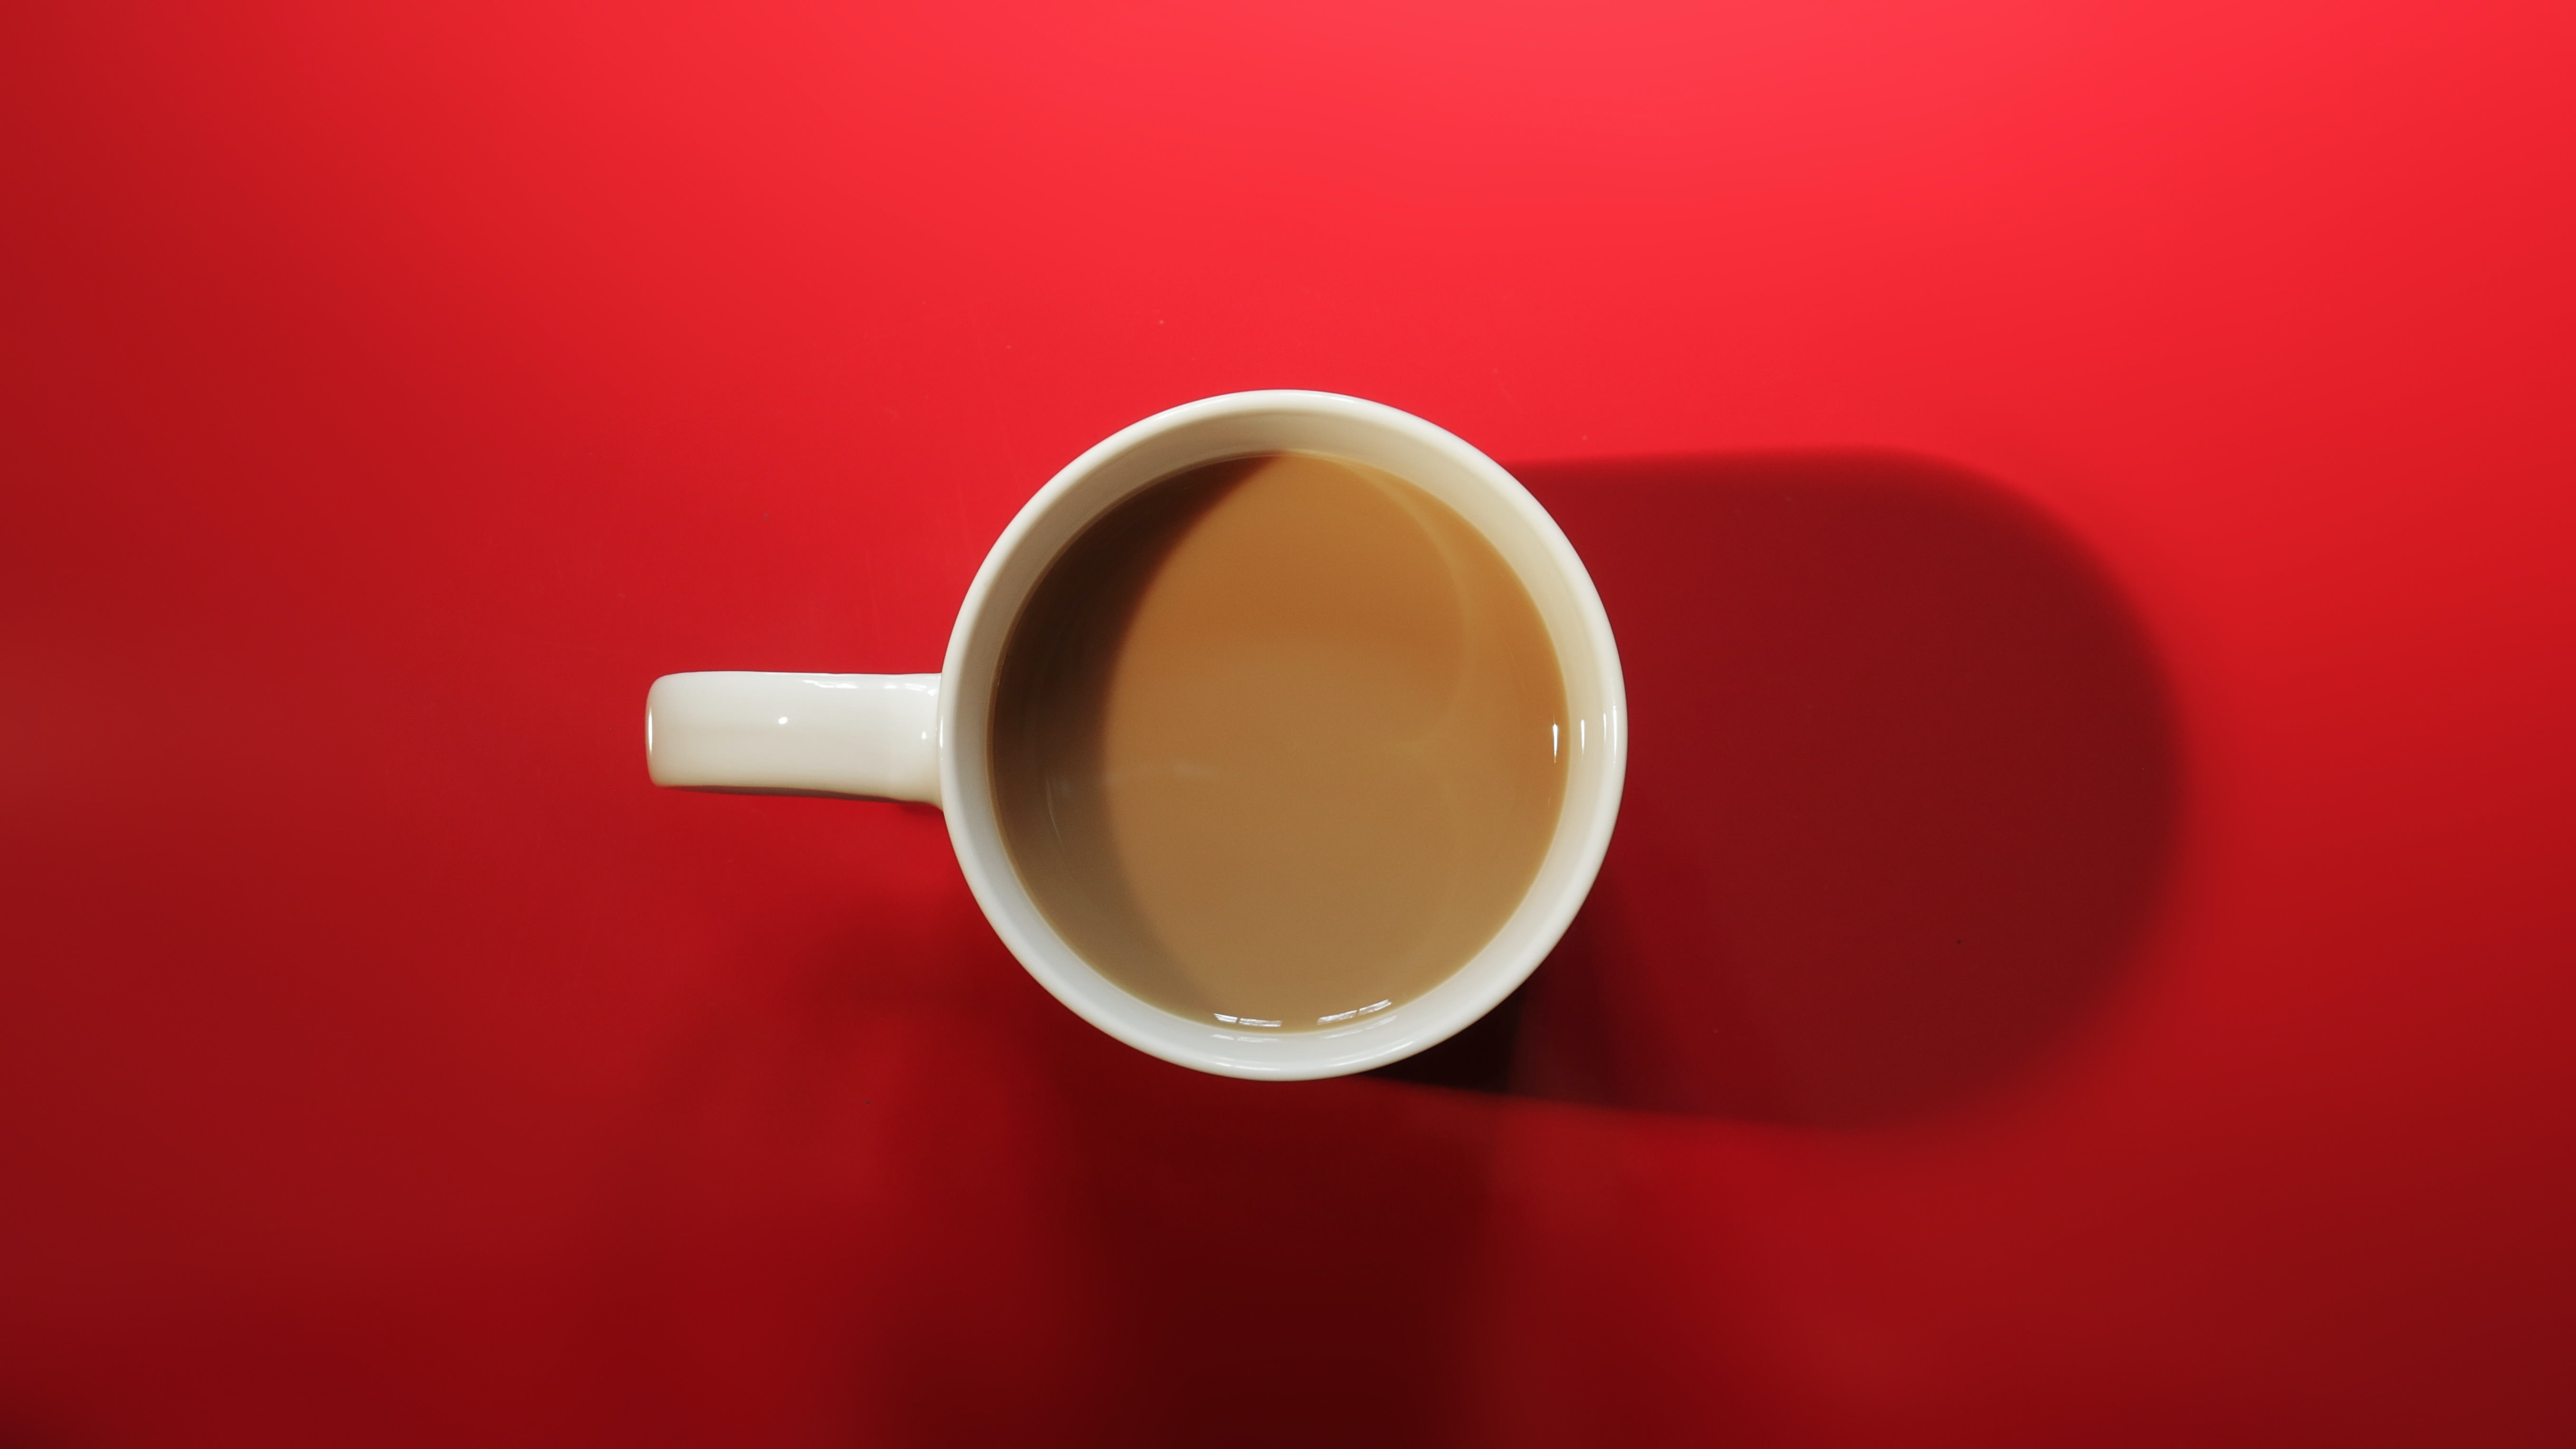 A top view of a half filled mug containing coffee in a red background